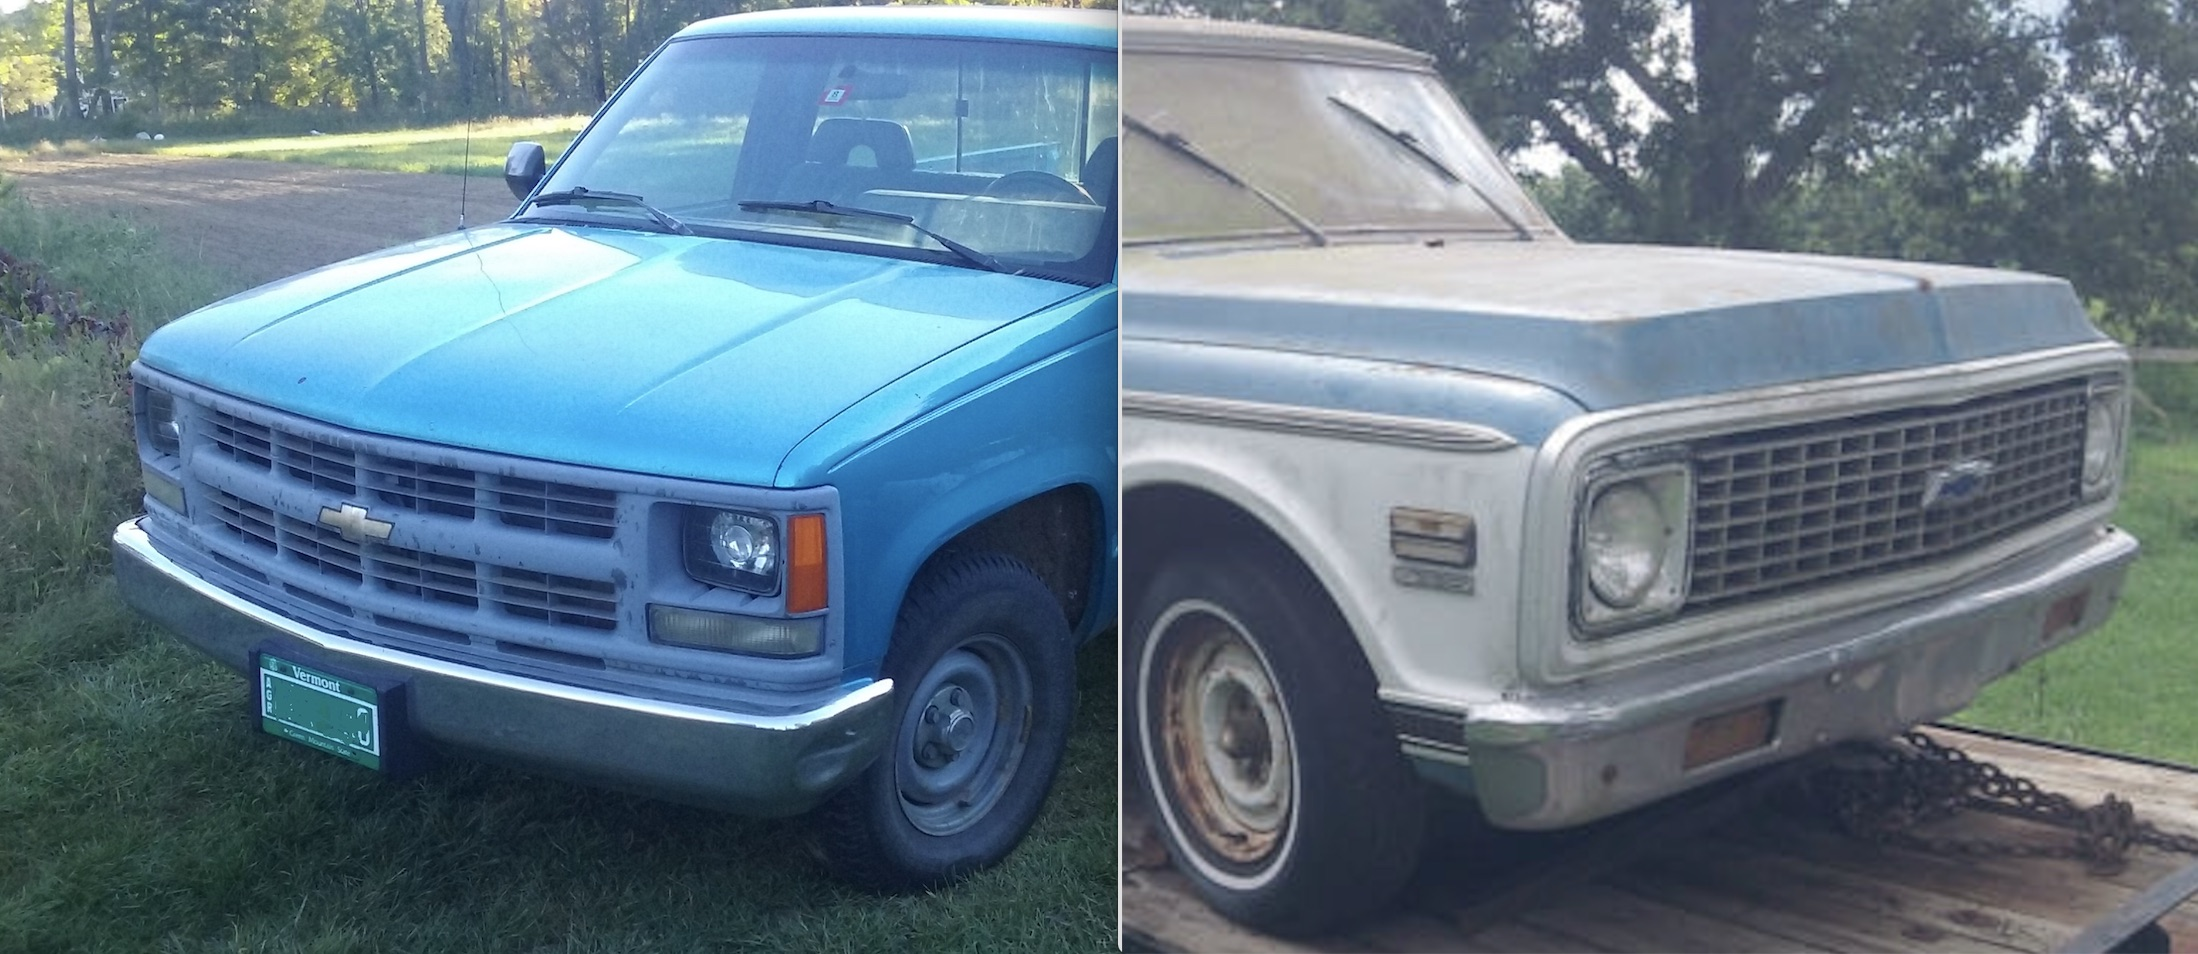 Would You Rather: Do You Choose The Classic Restoration Or The Late-Model Restoration?